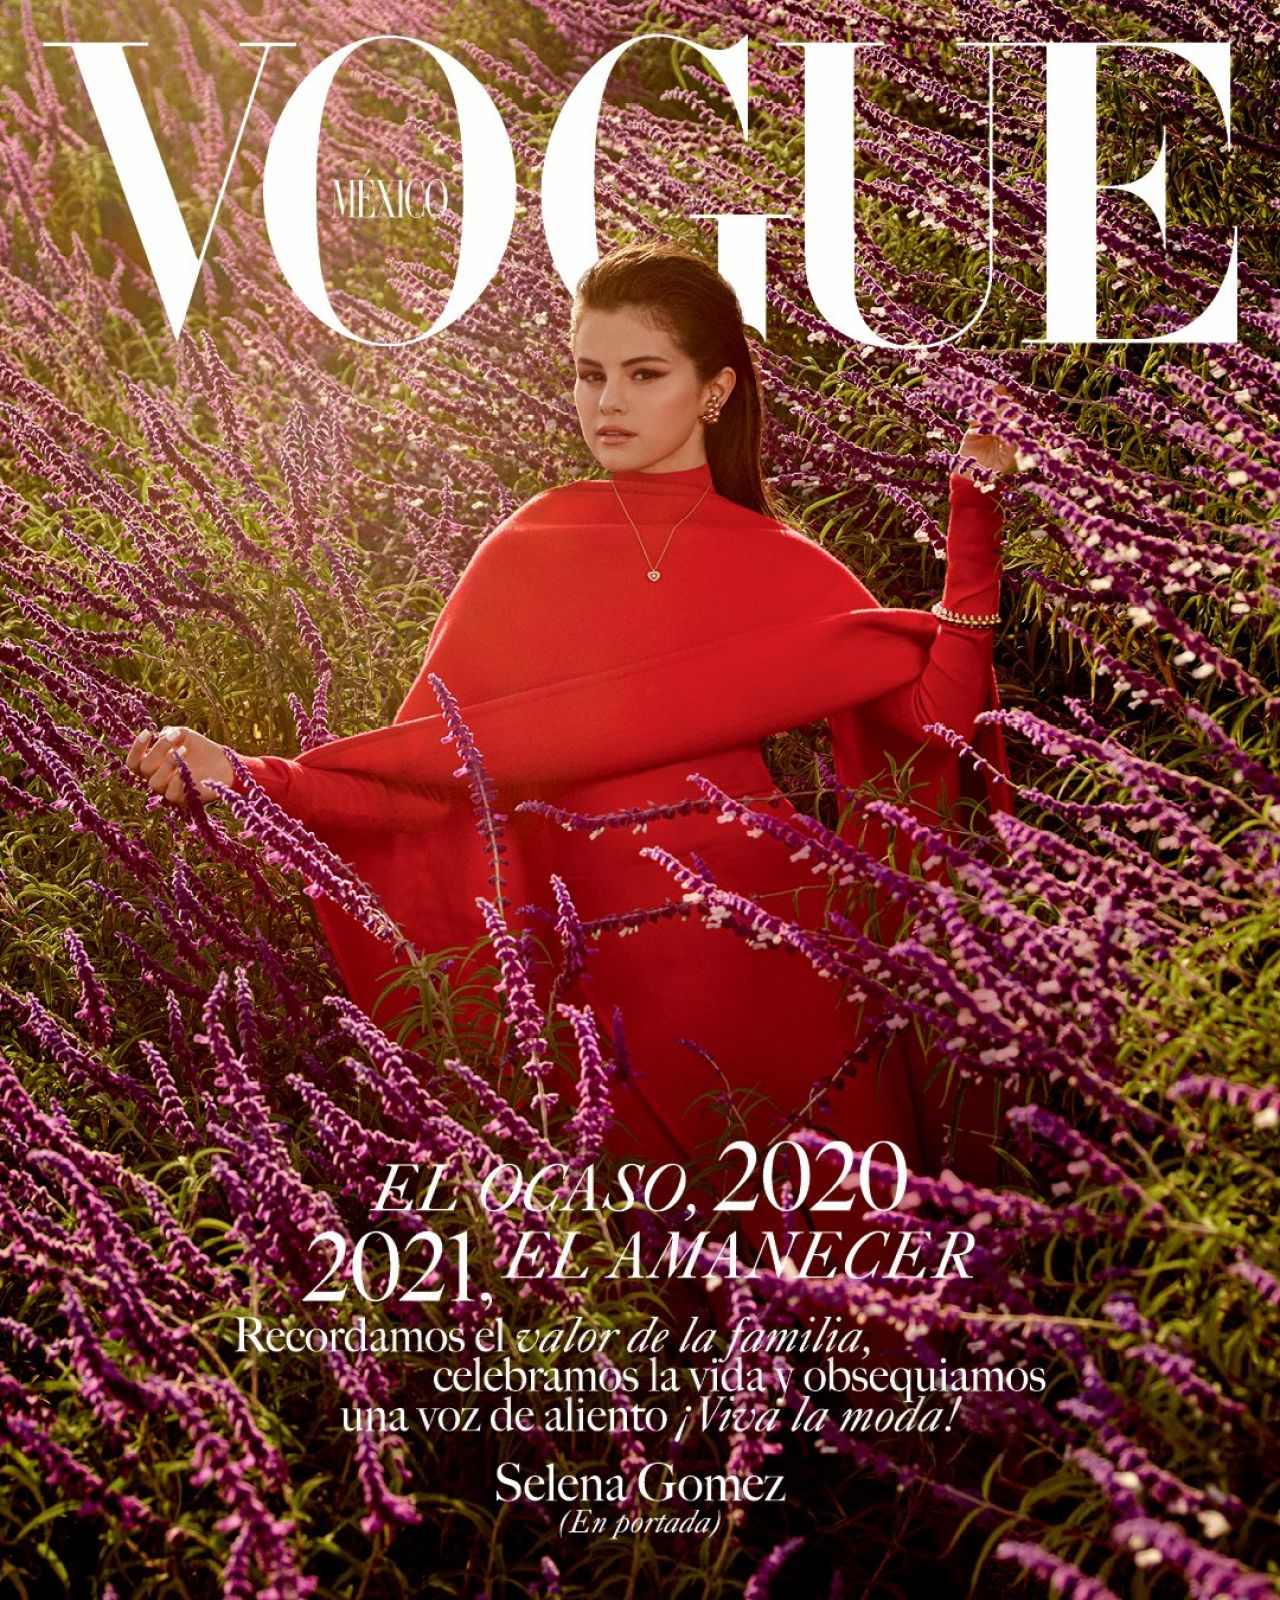 Selena Gomez is on the cover of December/January issue of Vogue Mexico